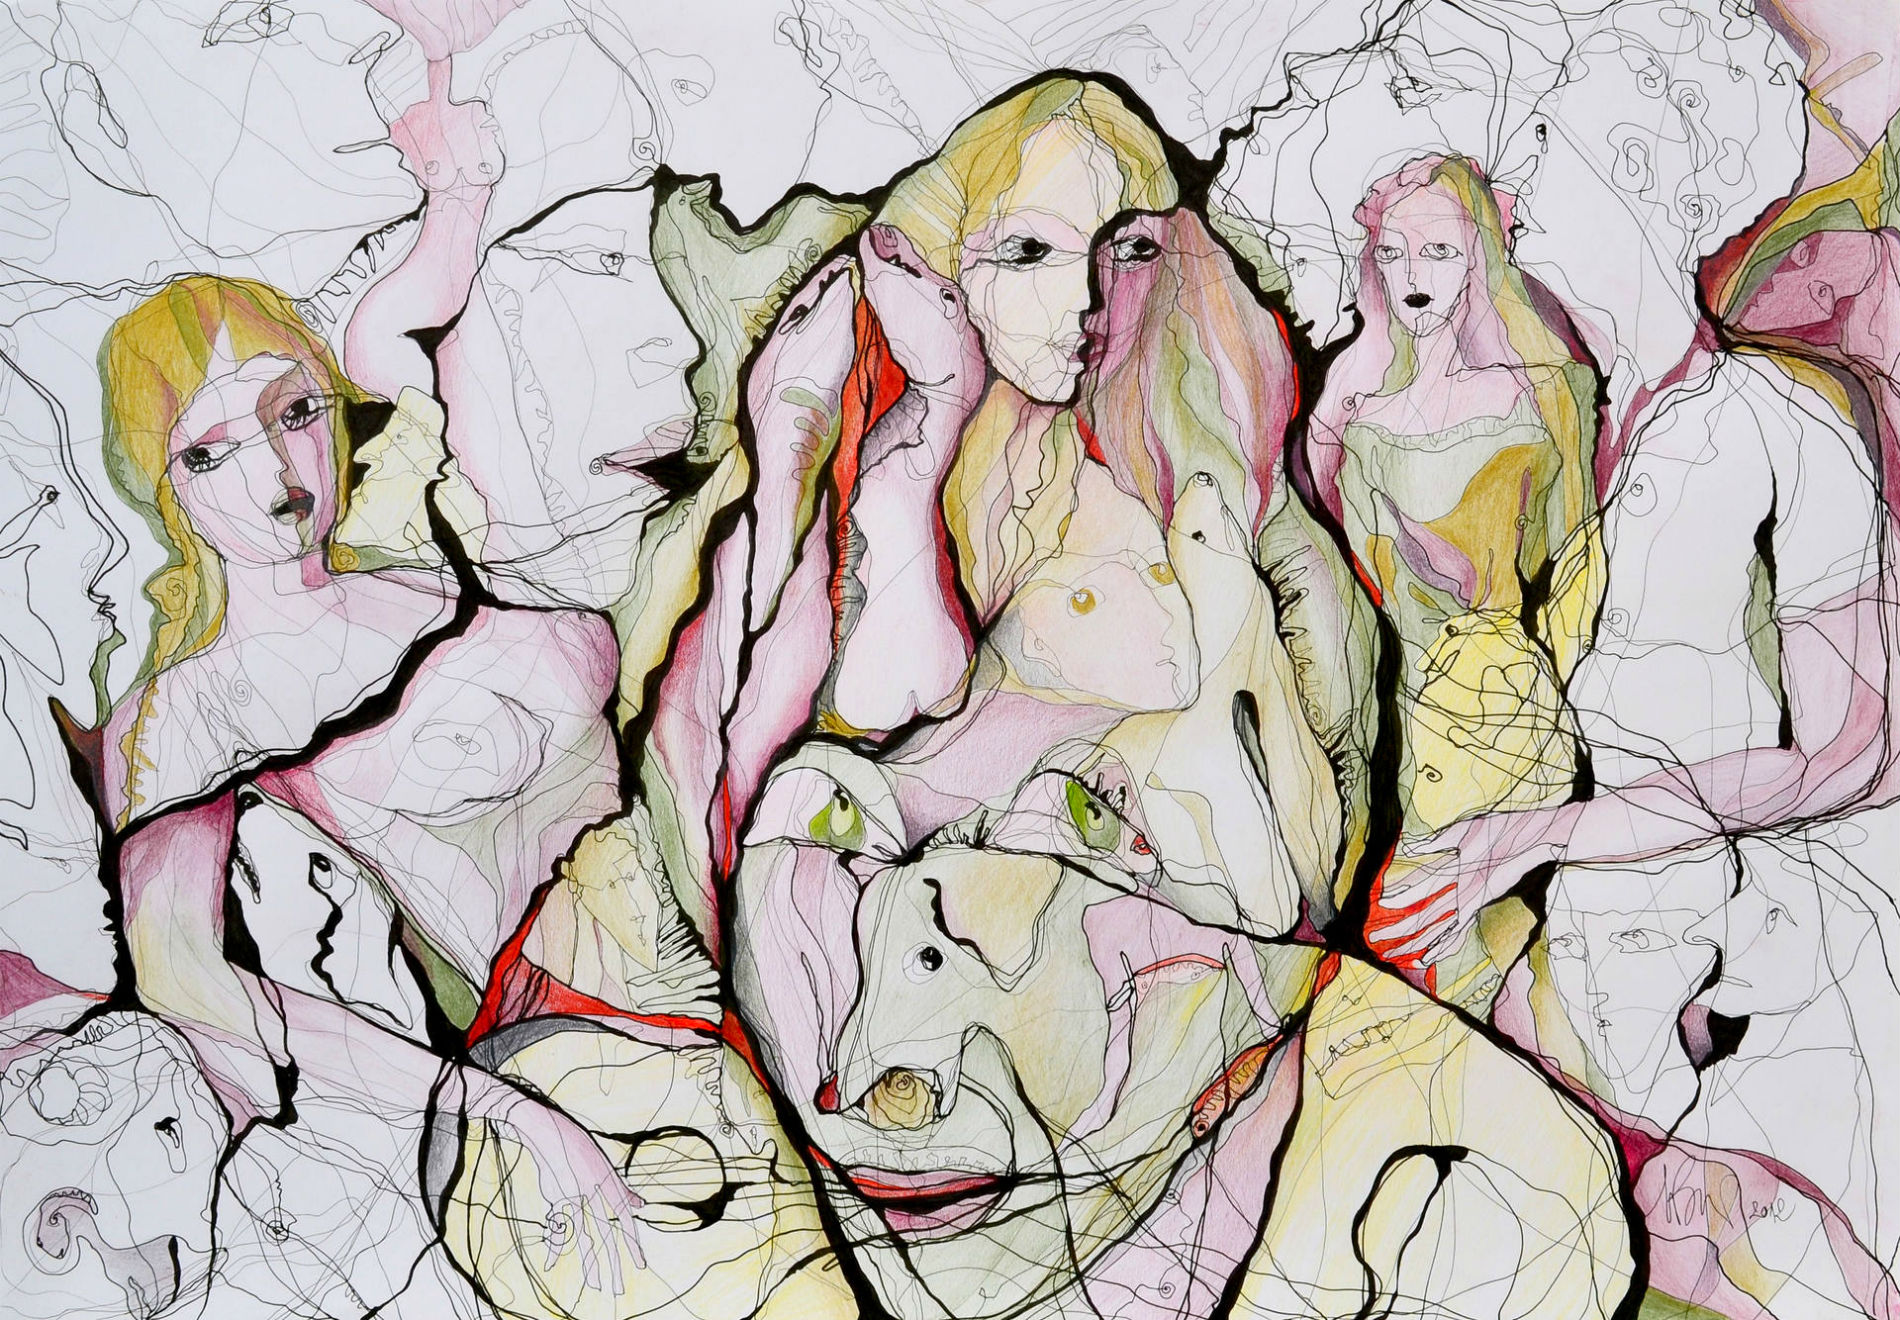 A Web of Abstract Drawings by Boicu Marinela